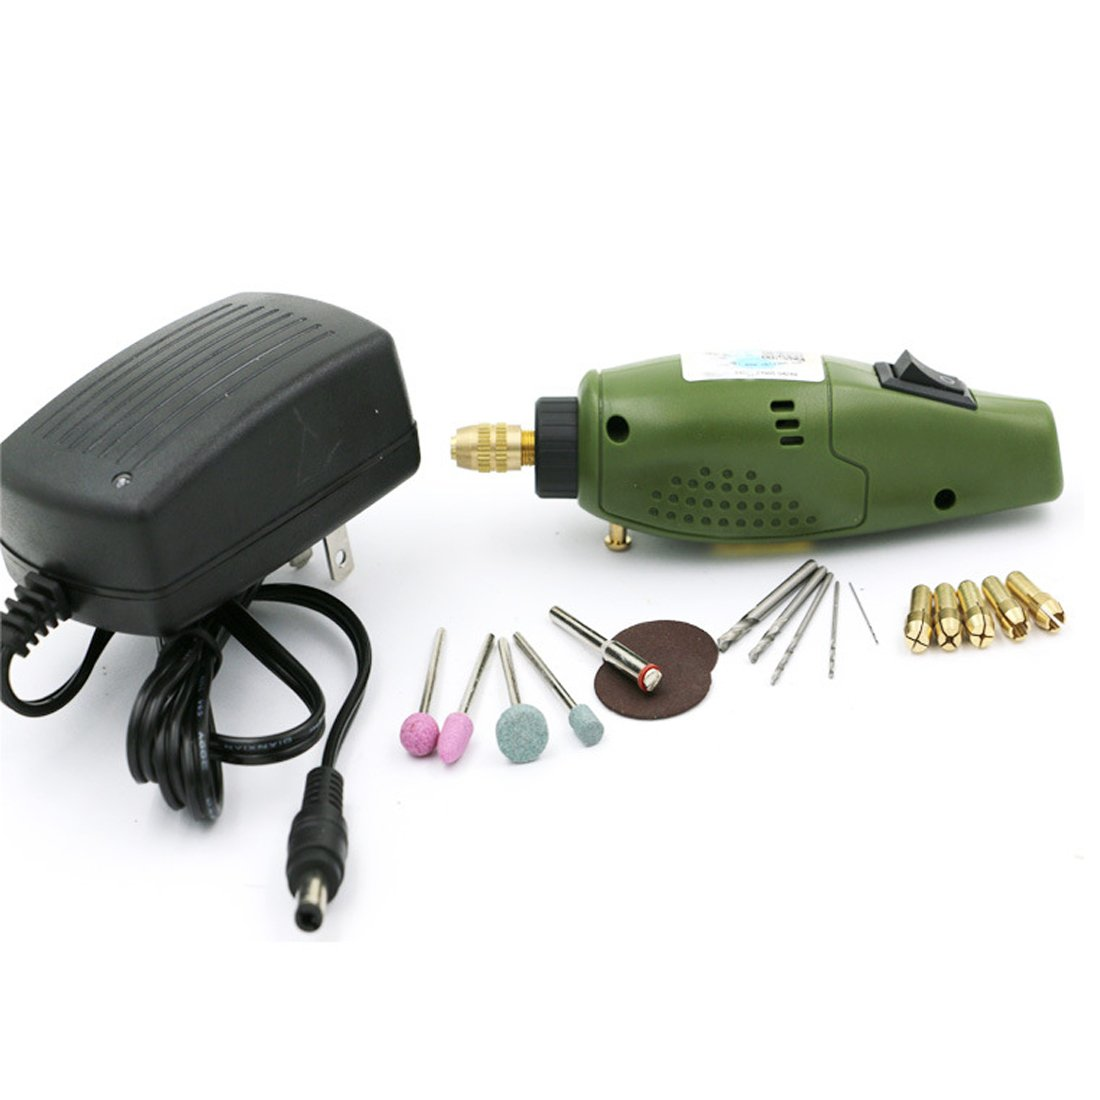 Mini 12V DC Electric Drill Electric Grinder Grinding Set for DIY Artist Milling Polishing Drilling Cutting Engraving Kit CY-Buity